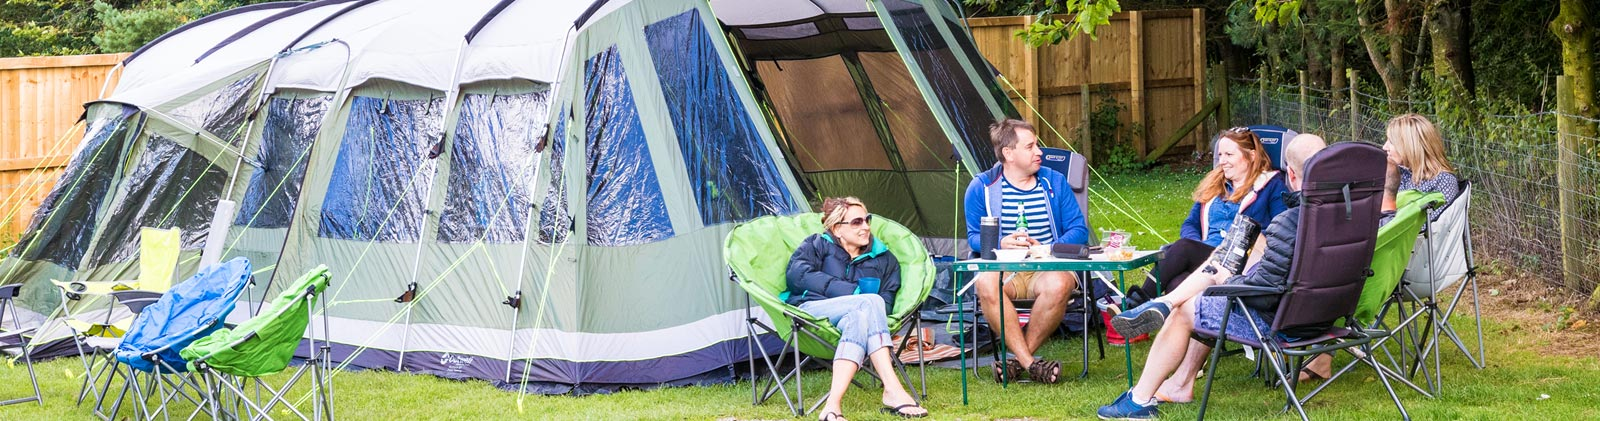 Camping at Golden Square camp site in North Yorkshire